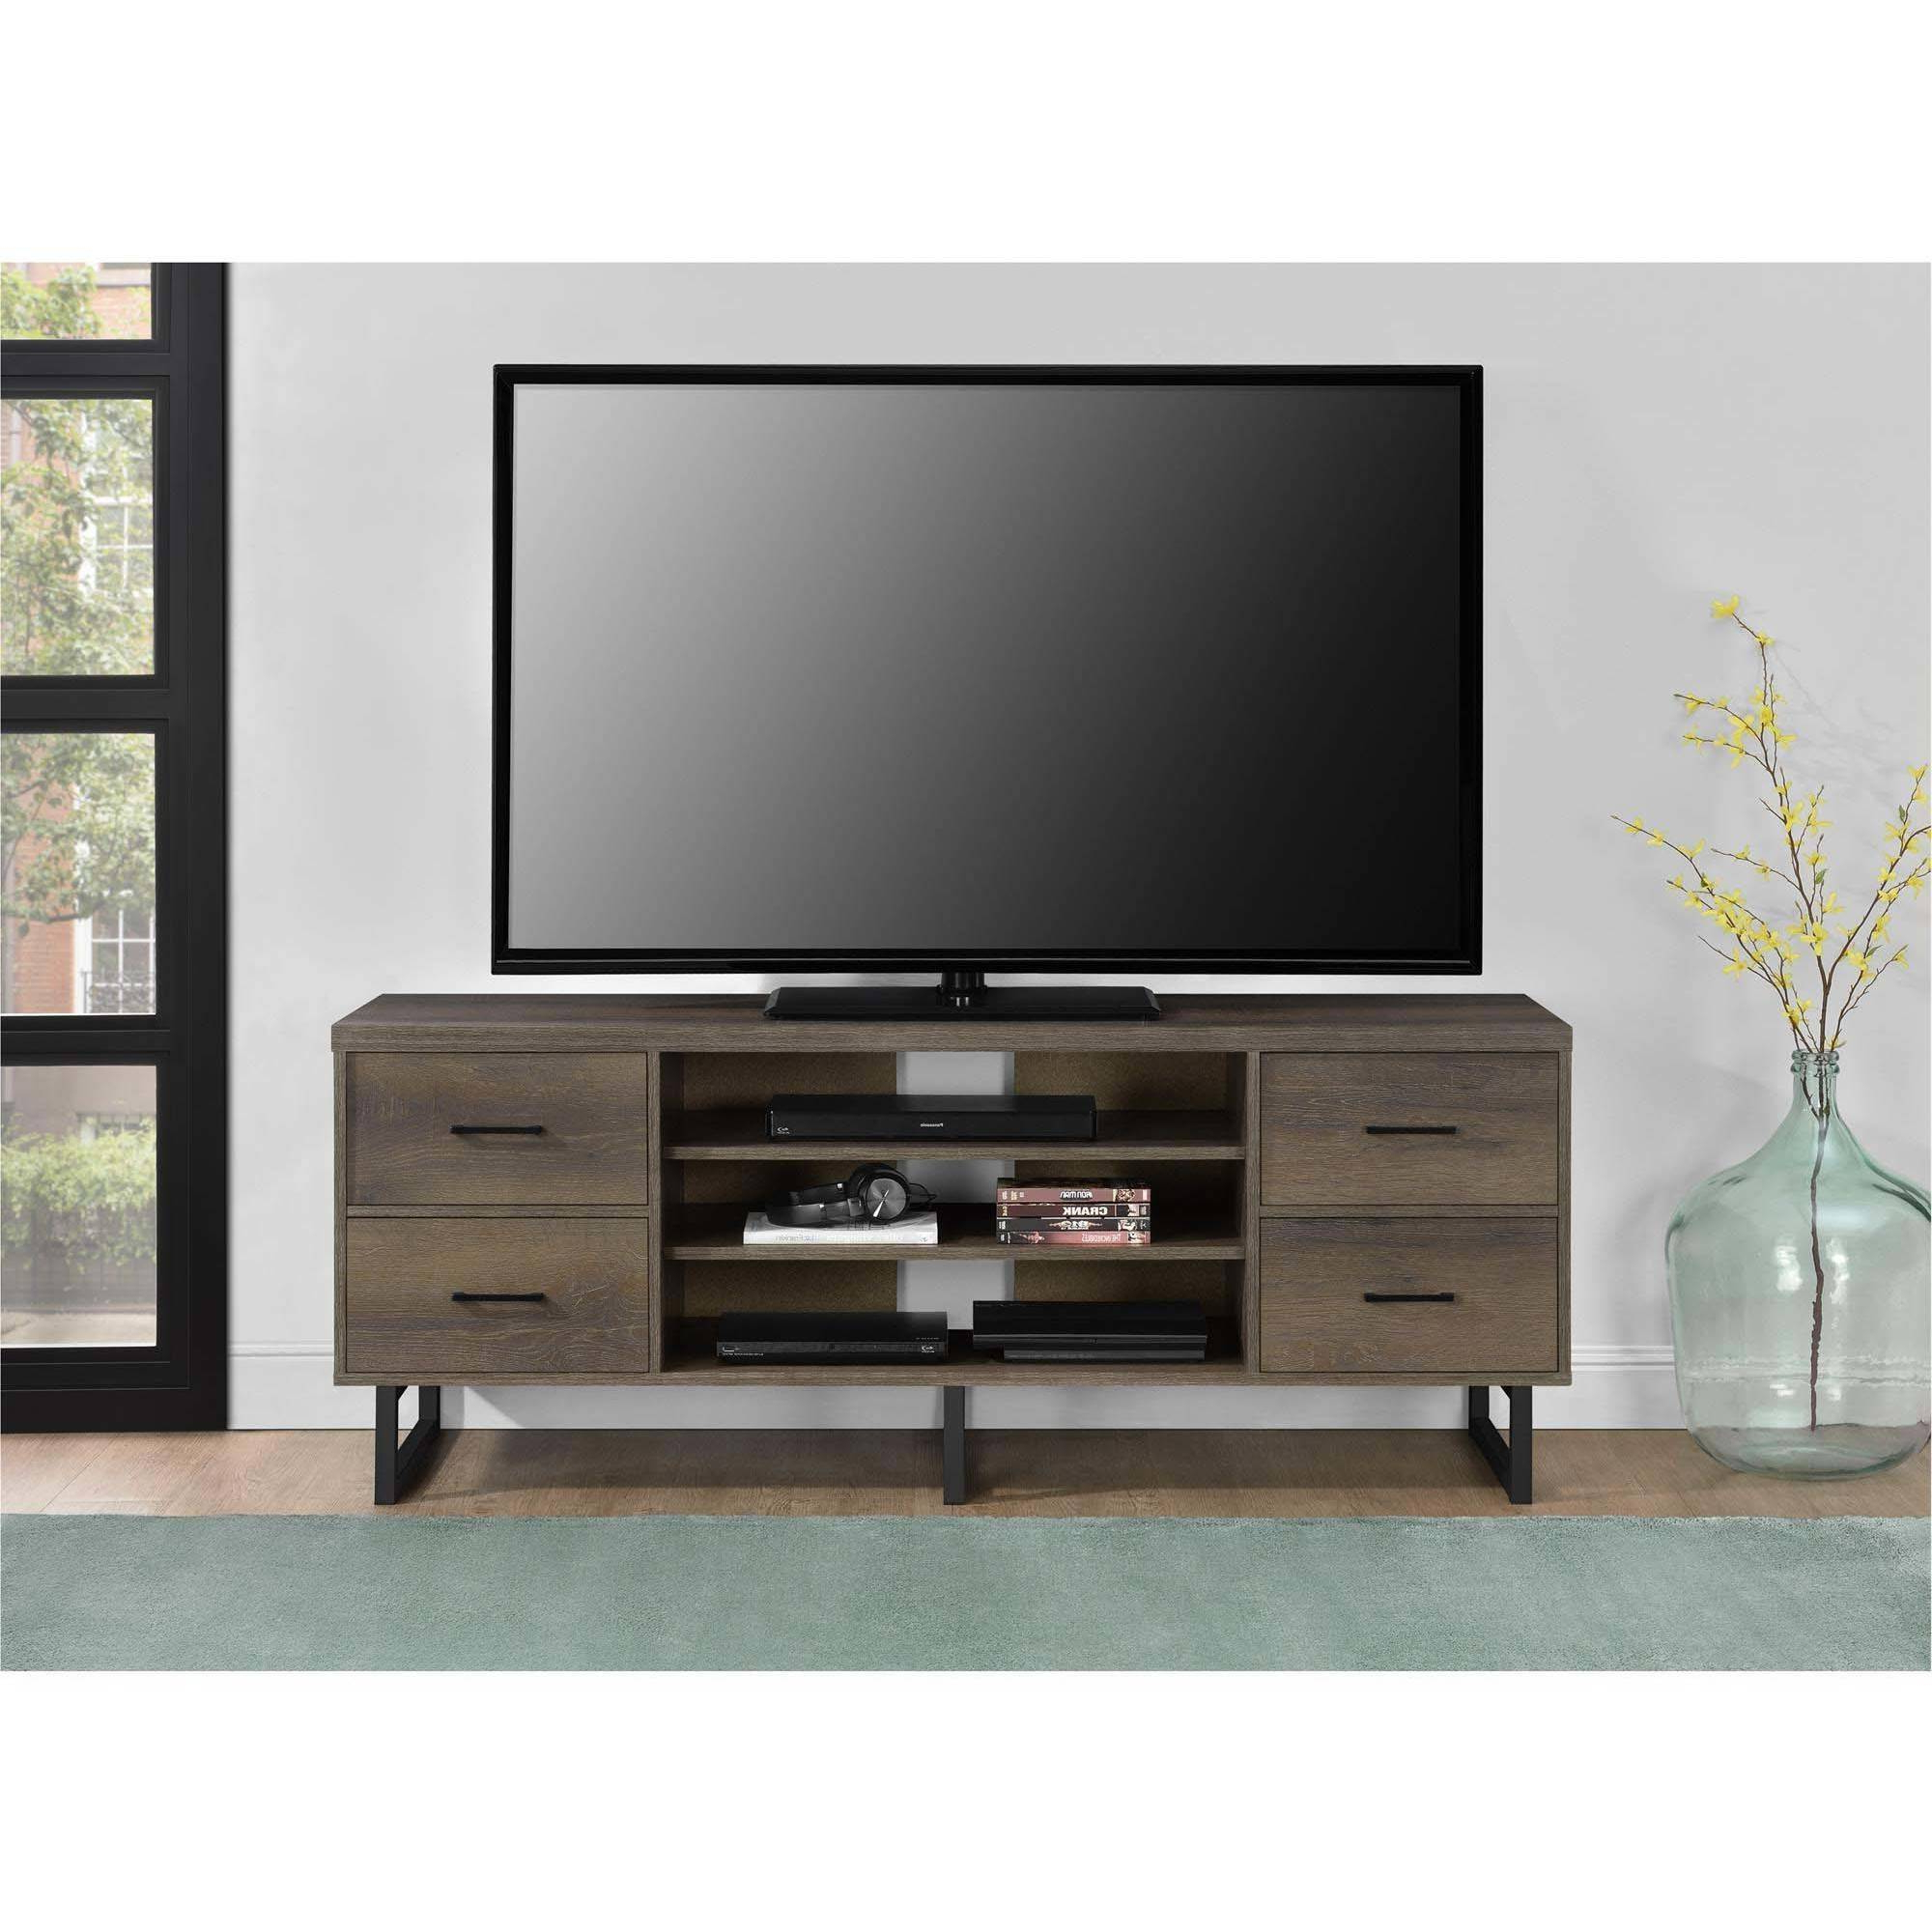 """Ameriwood Home Candon Tv Stand With Bins For Tvs Up To 60 Pertaining To Current Miah Tv Stands For Tvs Up To 60"""" (View 10 of 20)"""